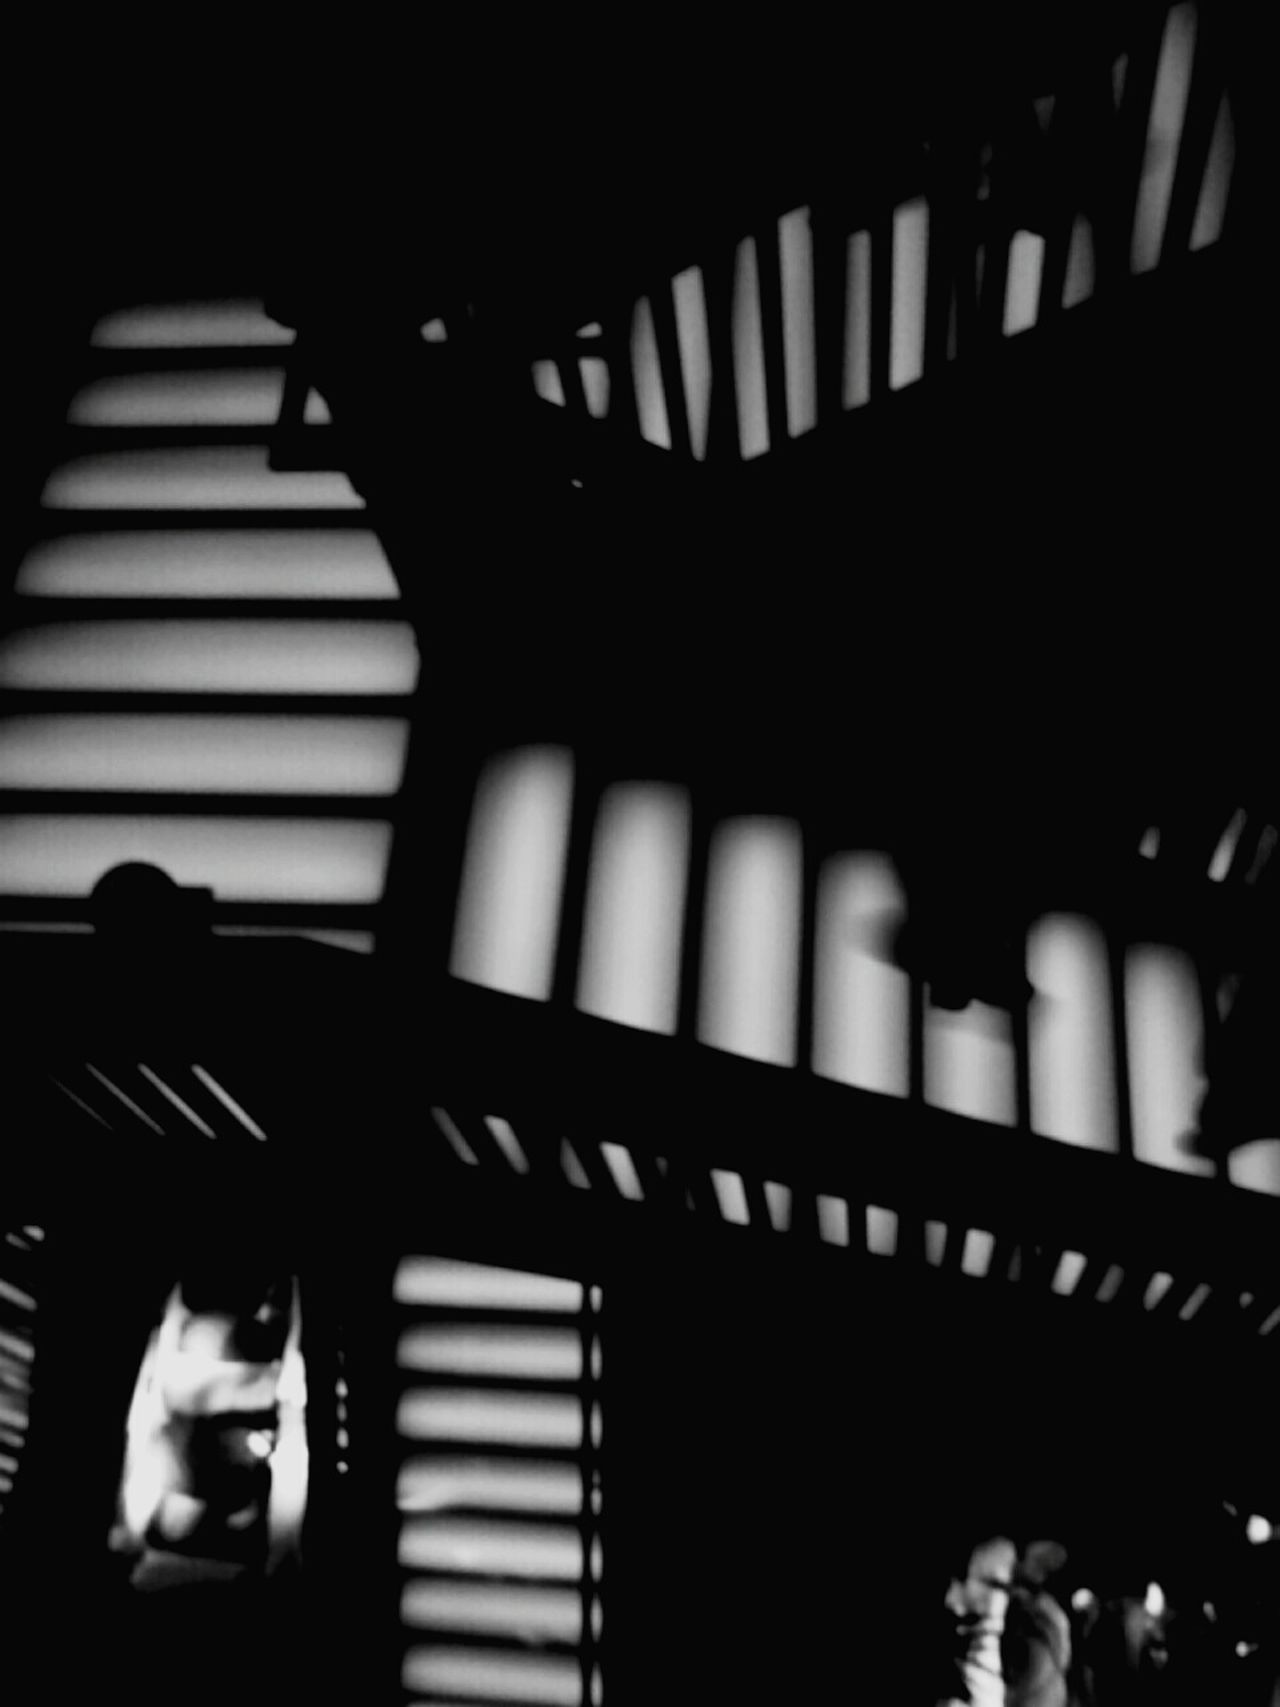 Same Pic Different Effect. Indoors  Silhouette Staircase Architecture Illuminated Exit Sign Day Black And White Urban EyeEm Best Shots EyeEmNewHere Up And Down People The Week On EyeEm